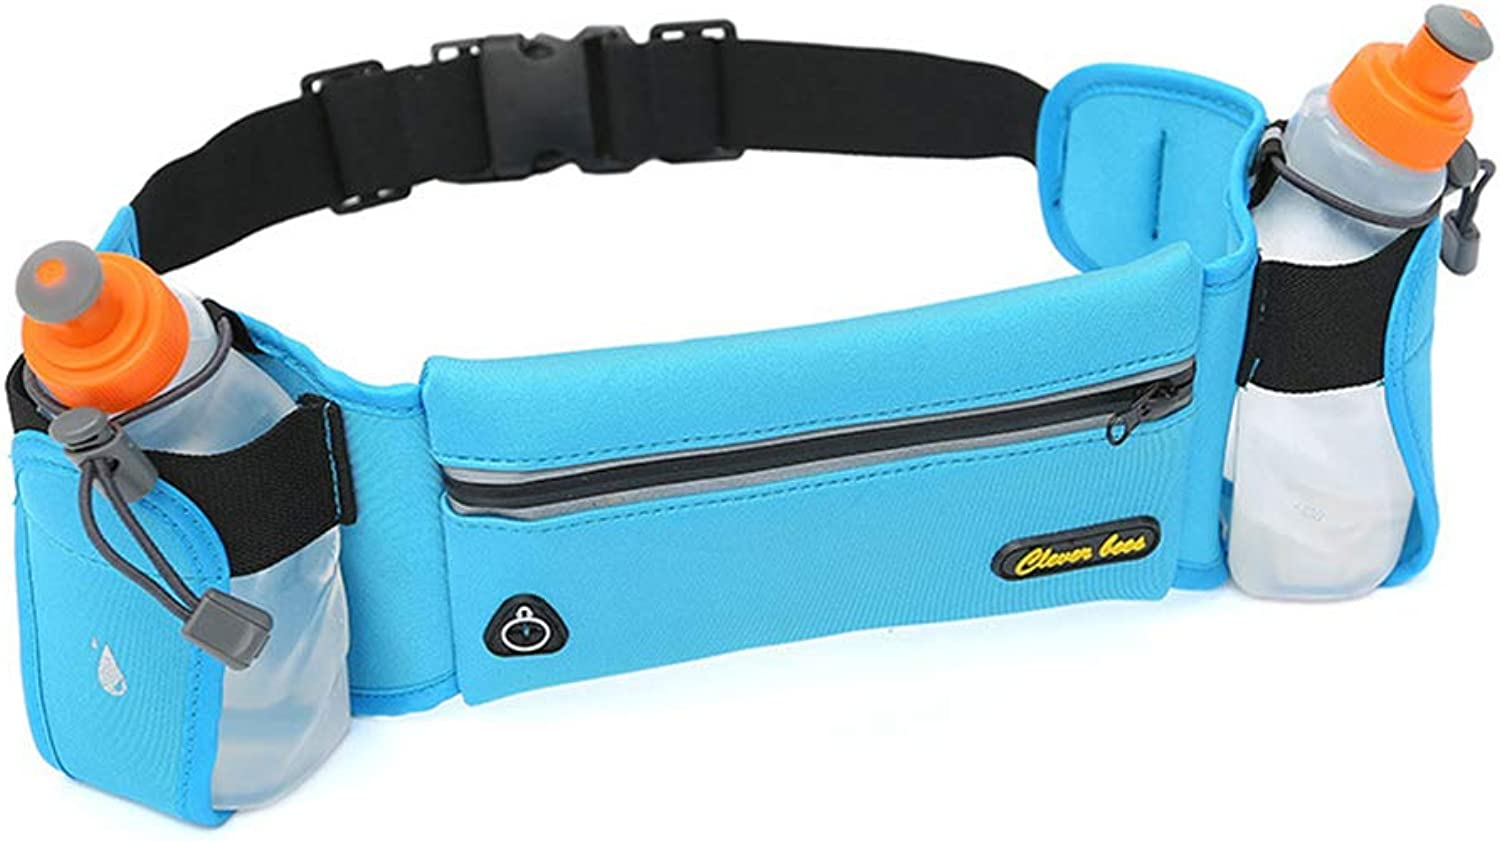 Waist Bag Fanny Pack, Adjustable Running Pouch with Water Bottle Holder Unisex for Workouts Cycling Travelling Outdoors Sport Hiking,blueee,B